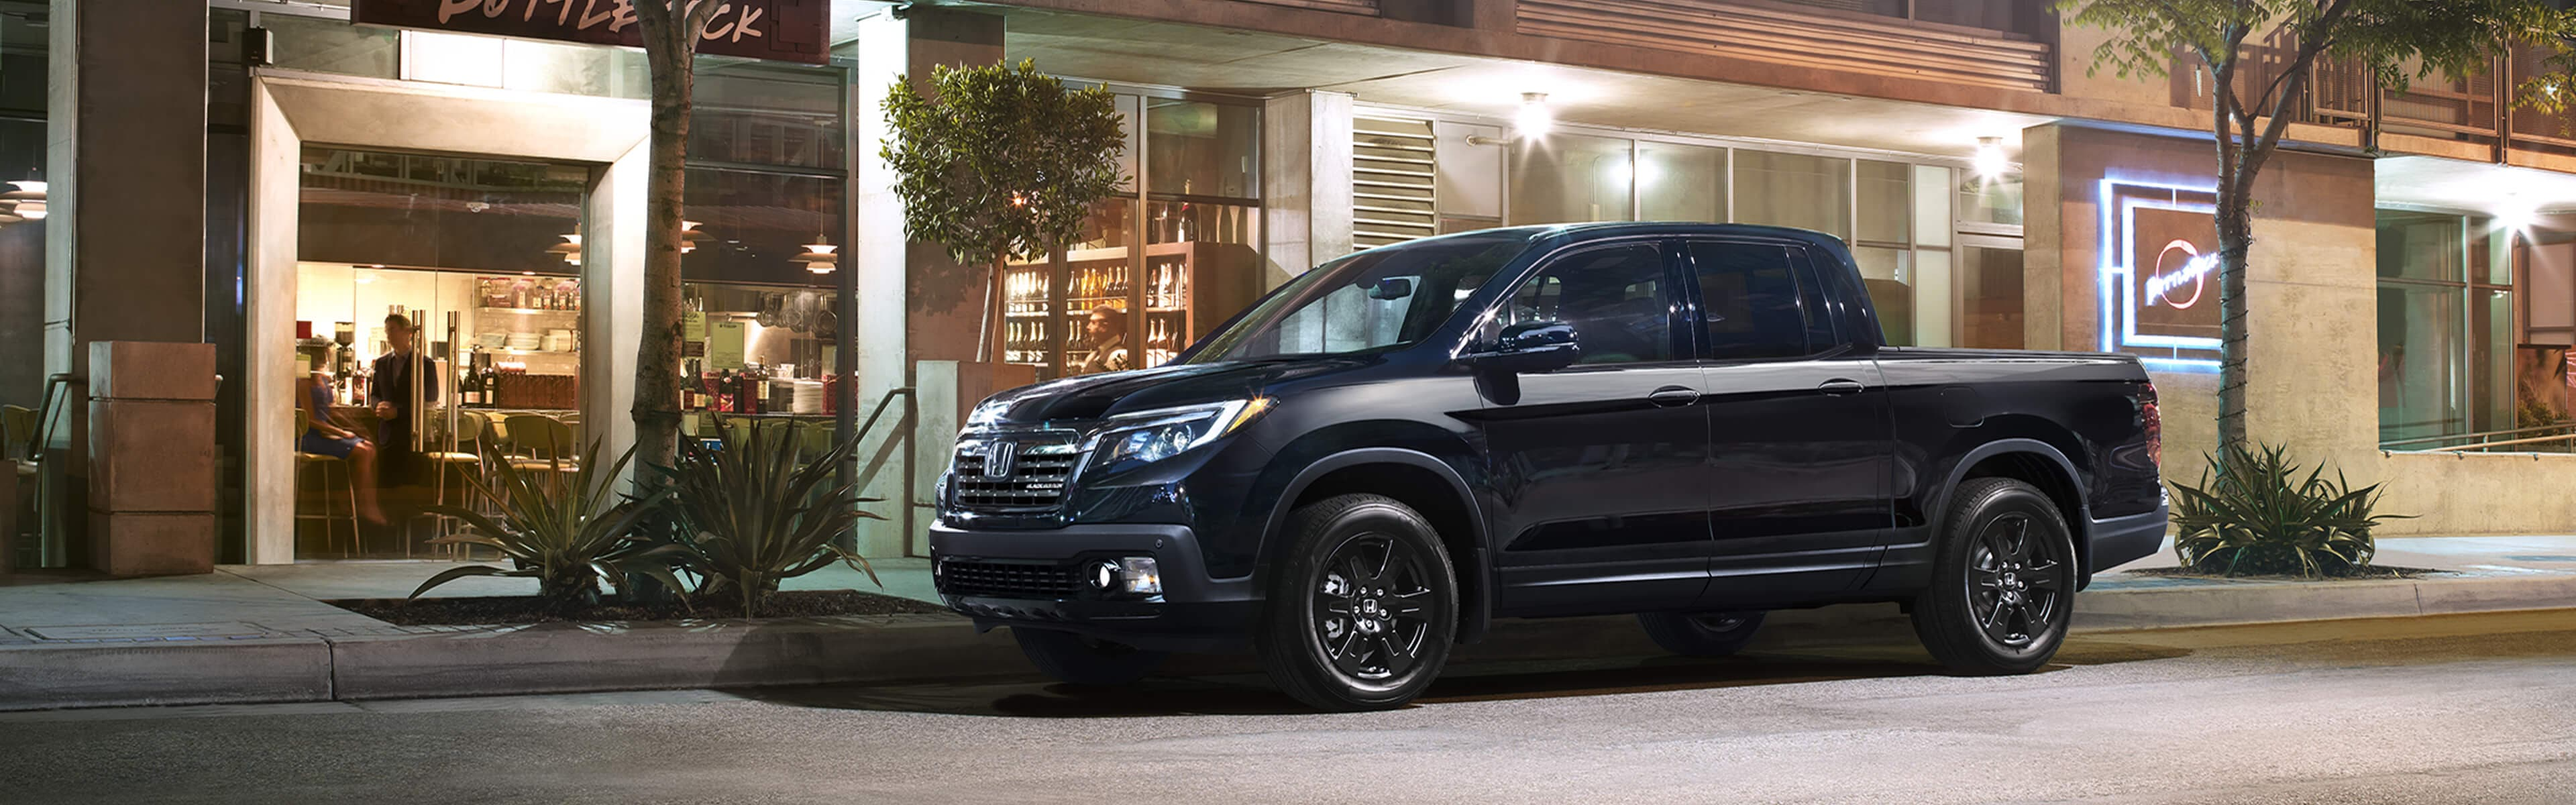 The 2019 Honda Ridgeline Truck Is Now Available In New Glasgow, NS